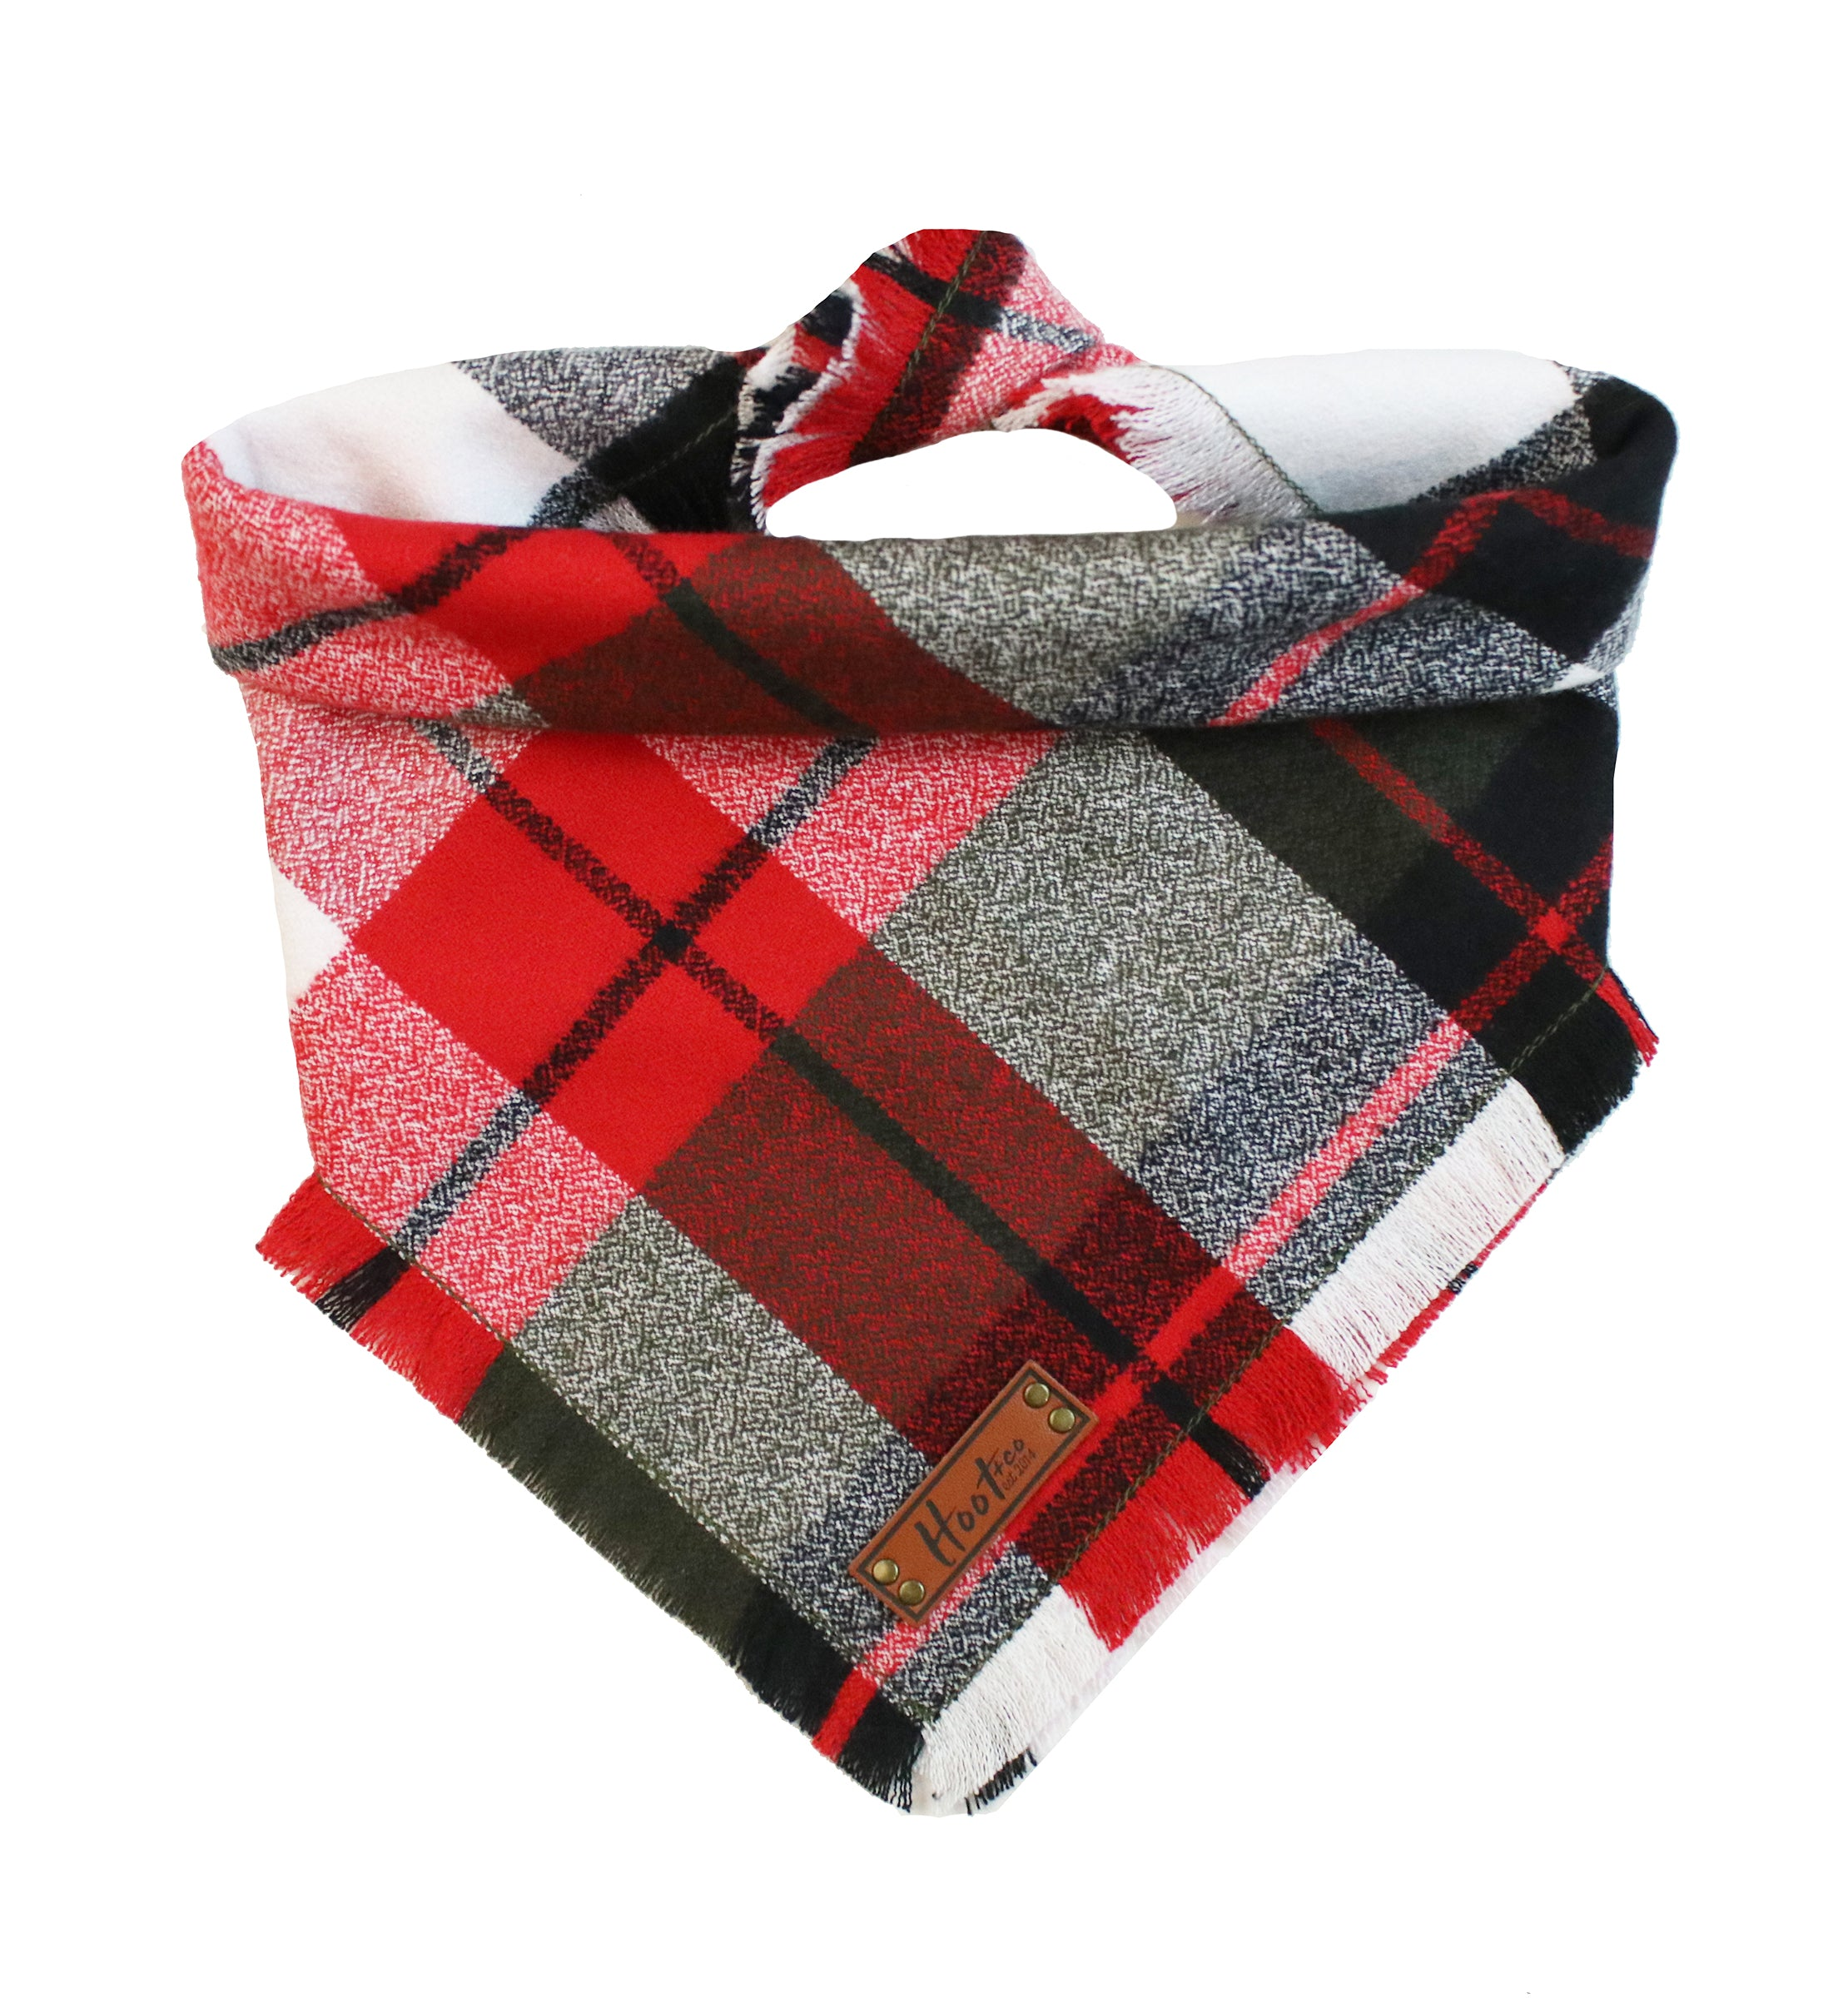 Sequoia Frayed Bandana